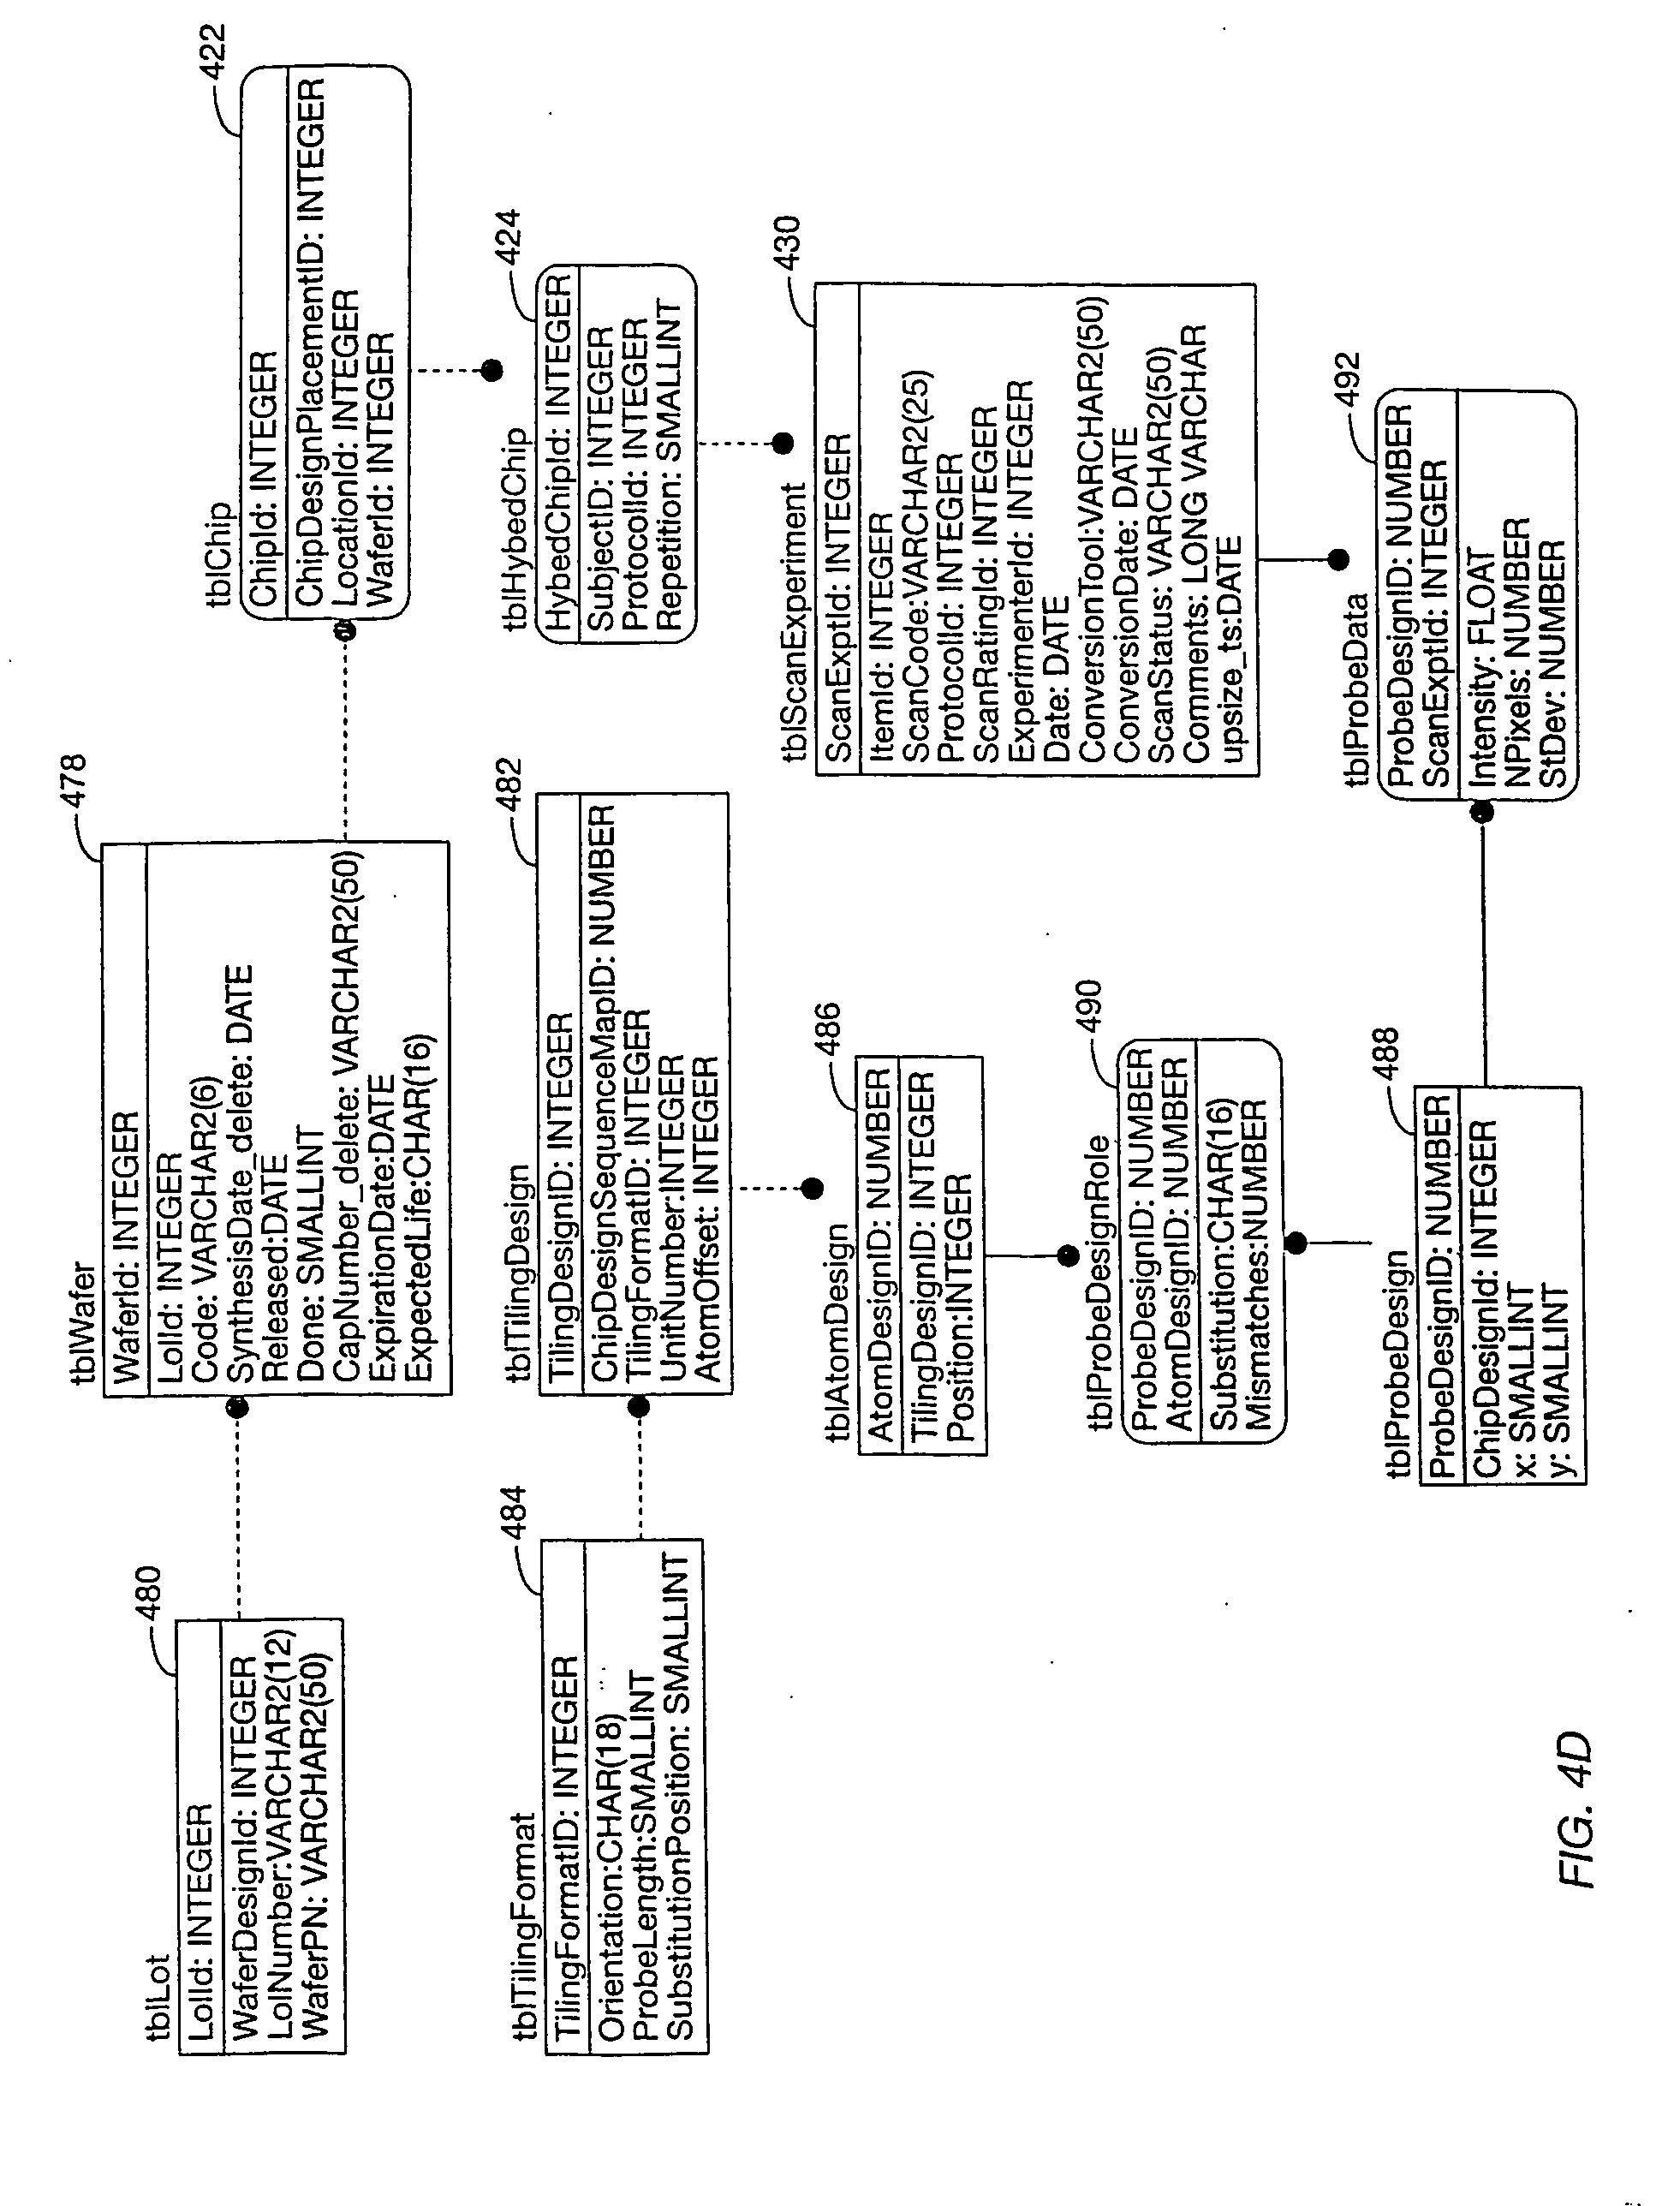 patent us20050164270   methods and system for providing a